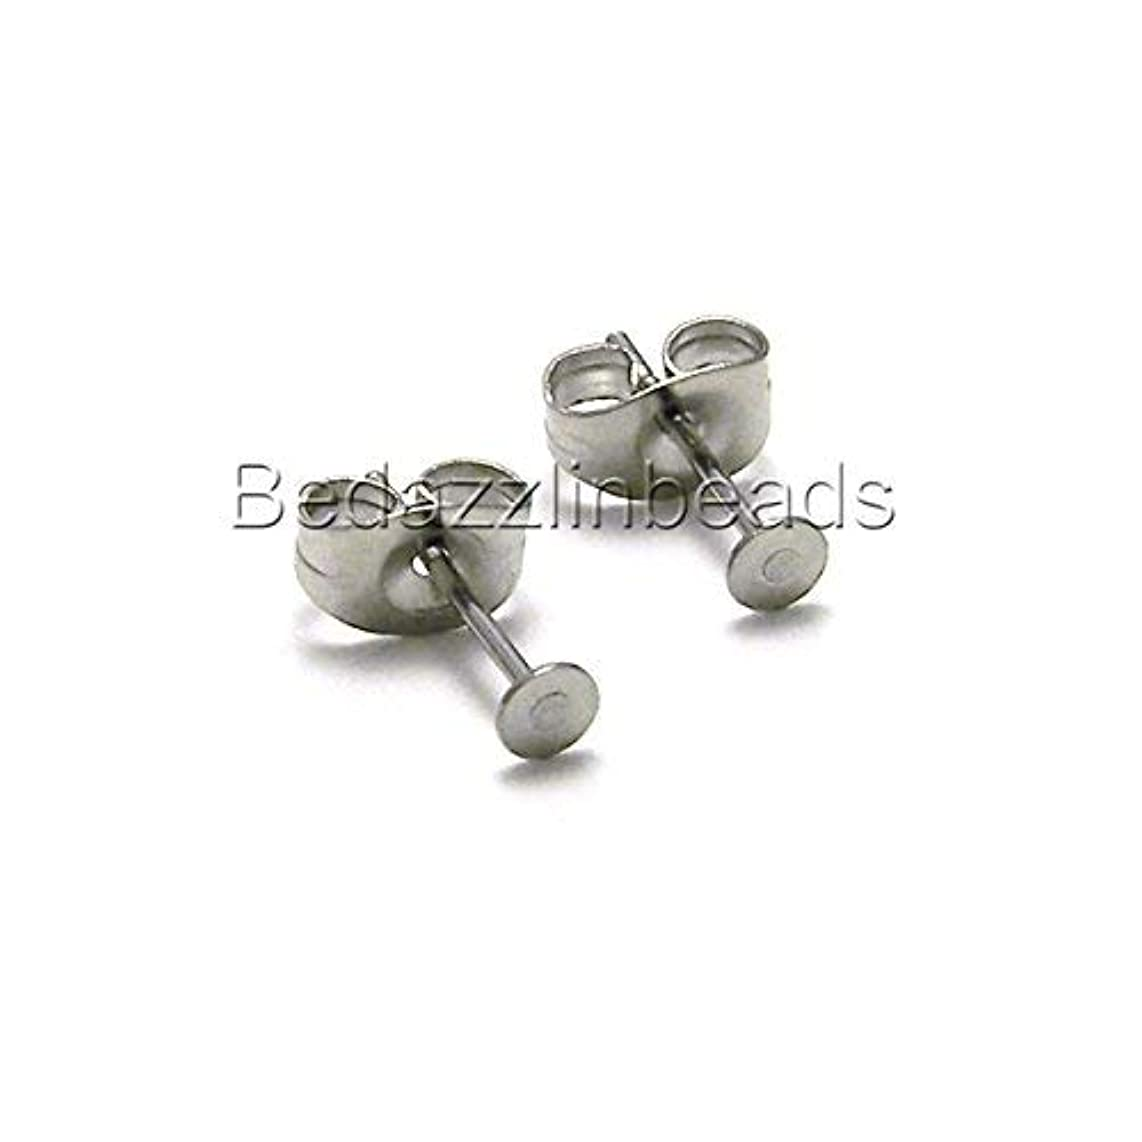 20 Hypo-Allergenic 304 Grade Stainless Surgical Steel Flat Pad Setting Earring Findings with Backs (3mm Pad)